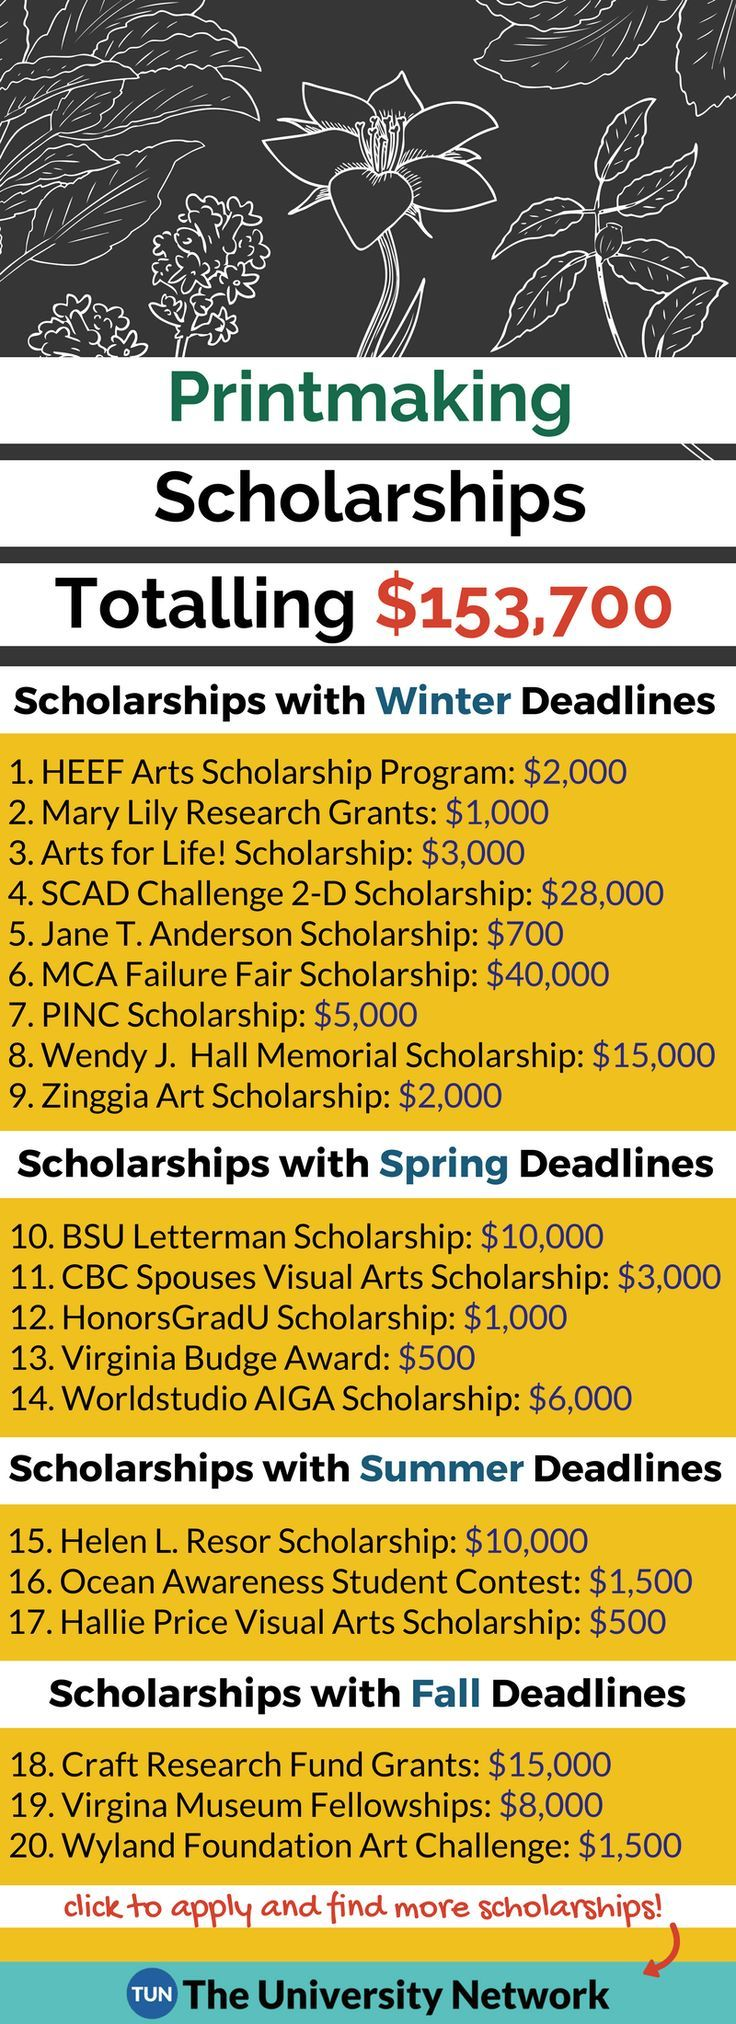 Here is a selection of Printmaking Scholarships that are listed on TUN.